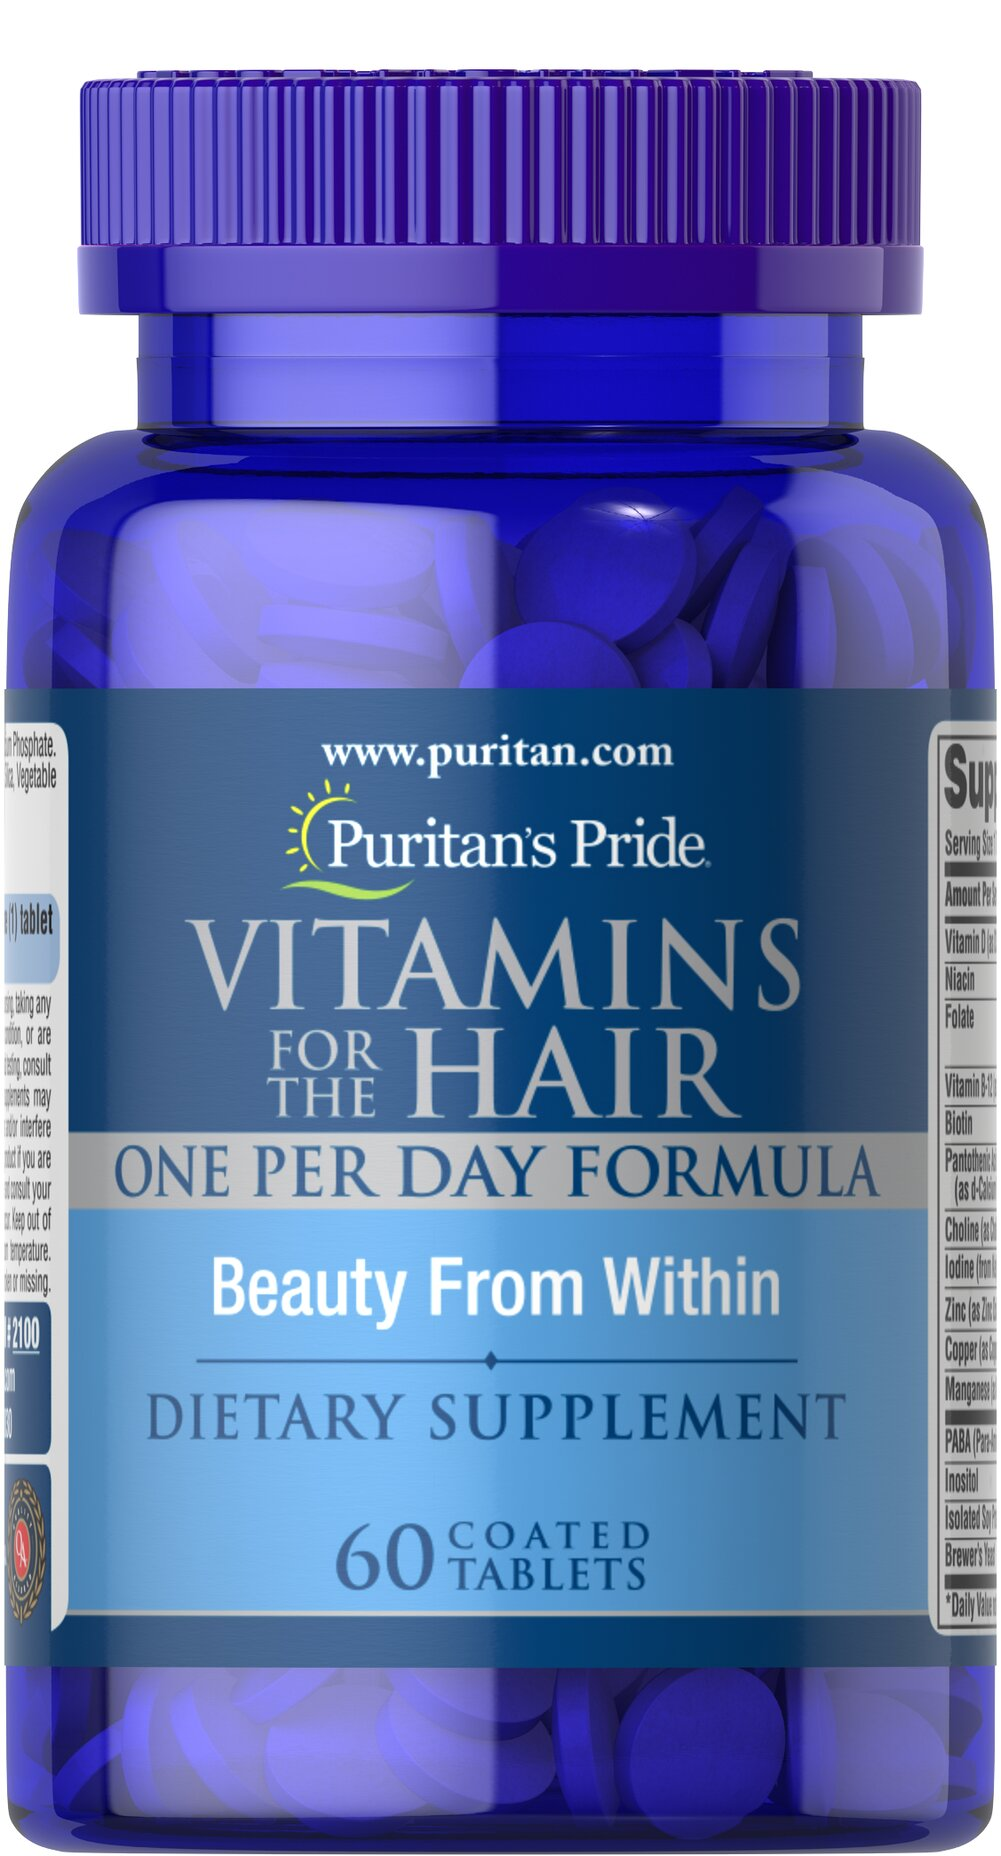 Vitamins for the Hair <p>A Natural Vitamin-Mineral Complex, especially Formulated for your Hair</p><p>Puritan's Pride has formulated Vitamins  for the Hair, to supplement your diet plan for a healthier looking head of hair.  Feed your hair the vitamins and minerals needed to help it be its healthiest.**</p> 60 Coated Caplets  $12.29